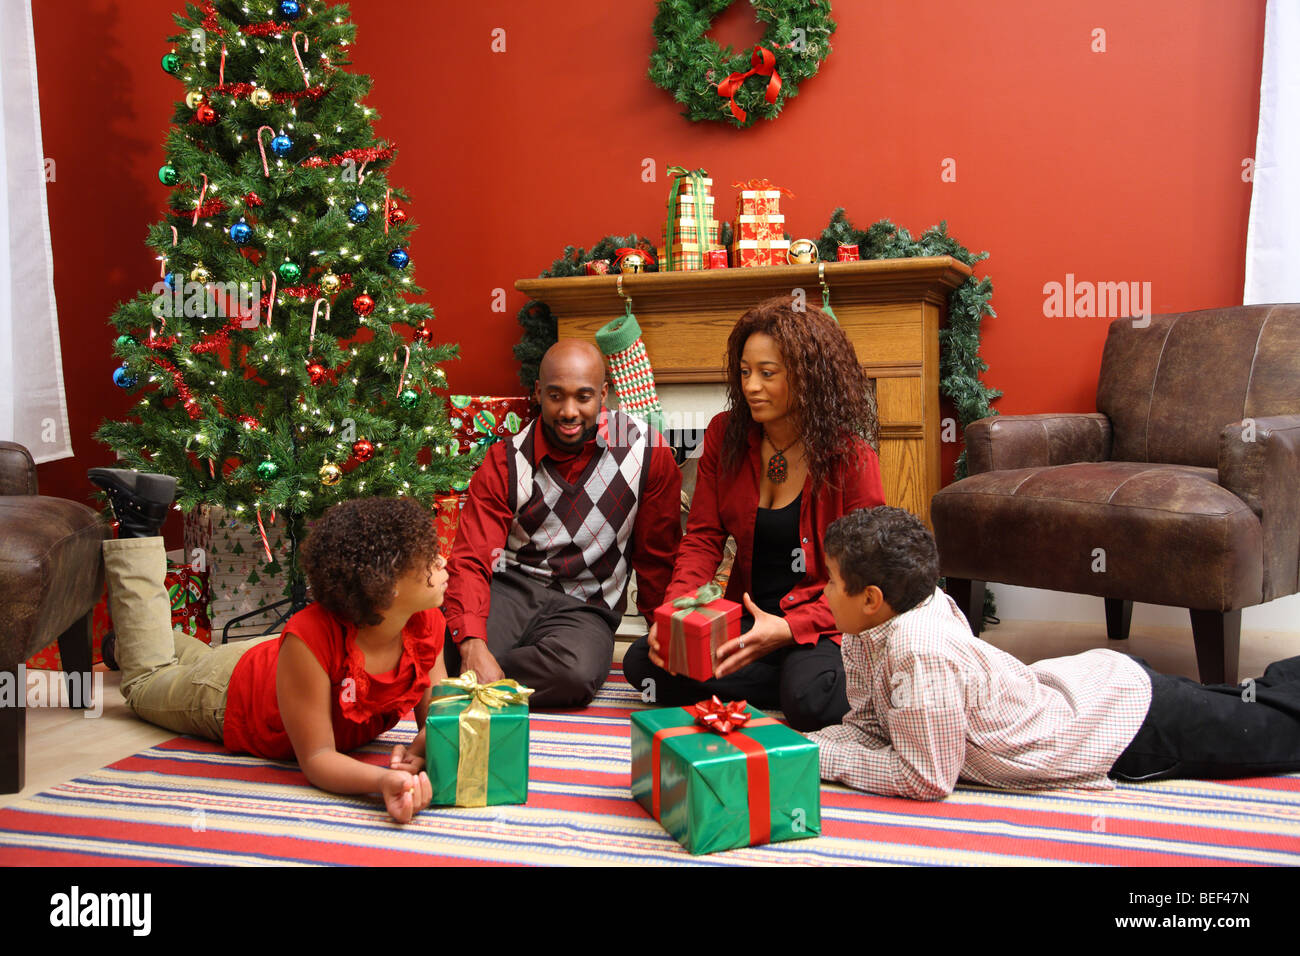 African American family by Christmas tree - Stock Image